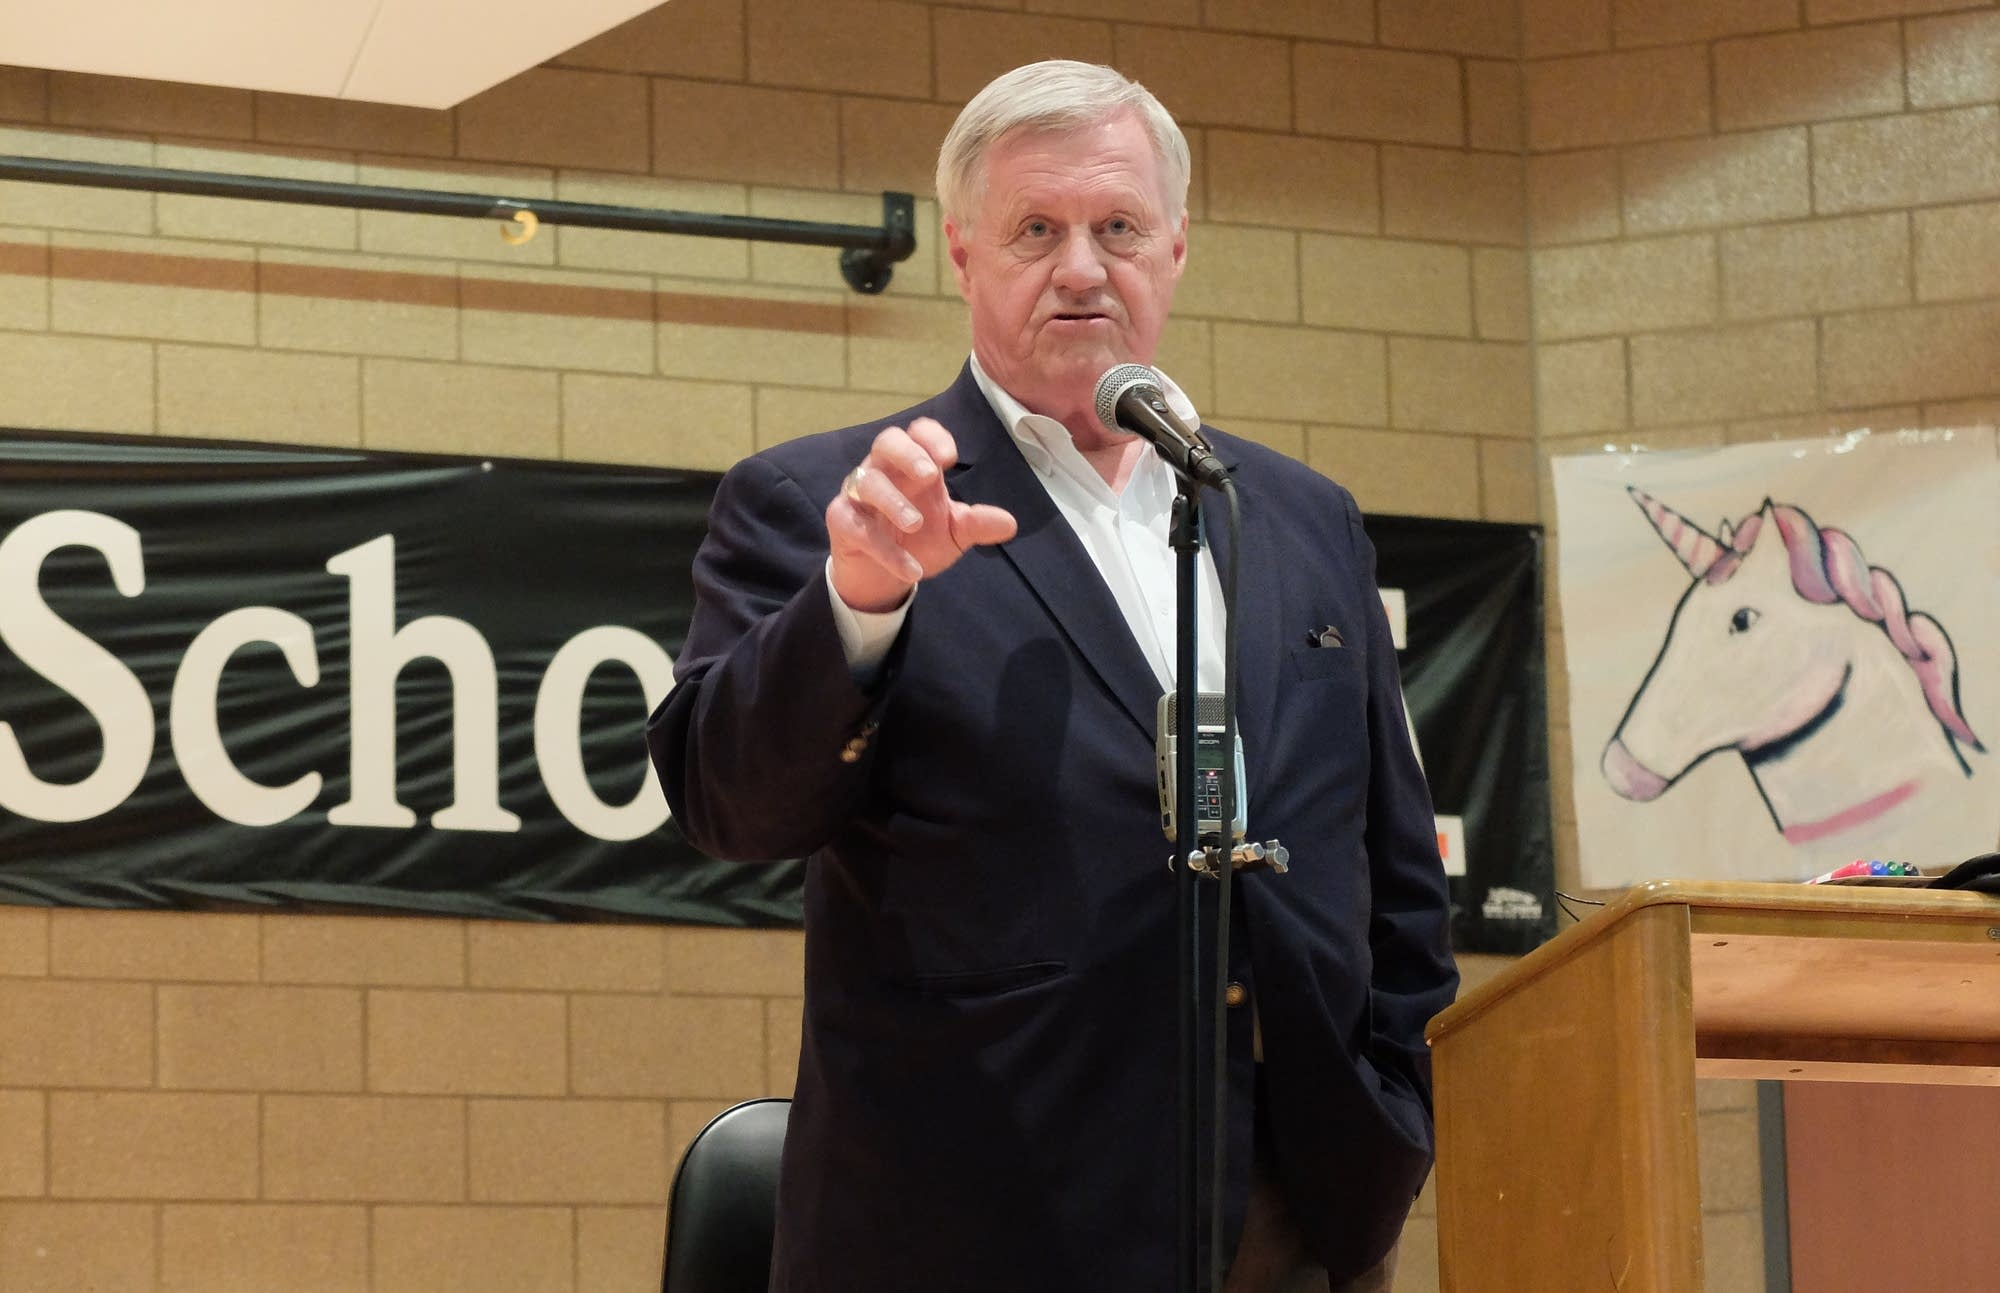 Minnesota 7th District U.S. Rep. Collin Peterson speaks at a town hall.